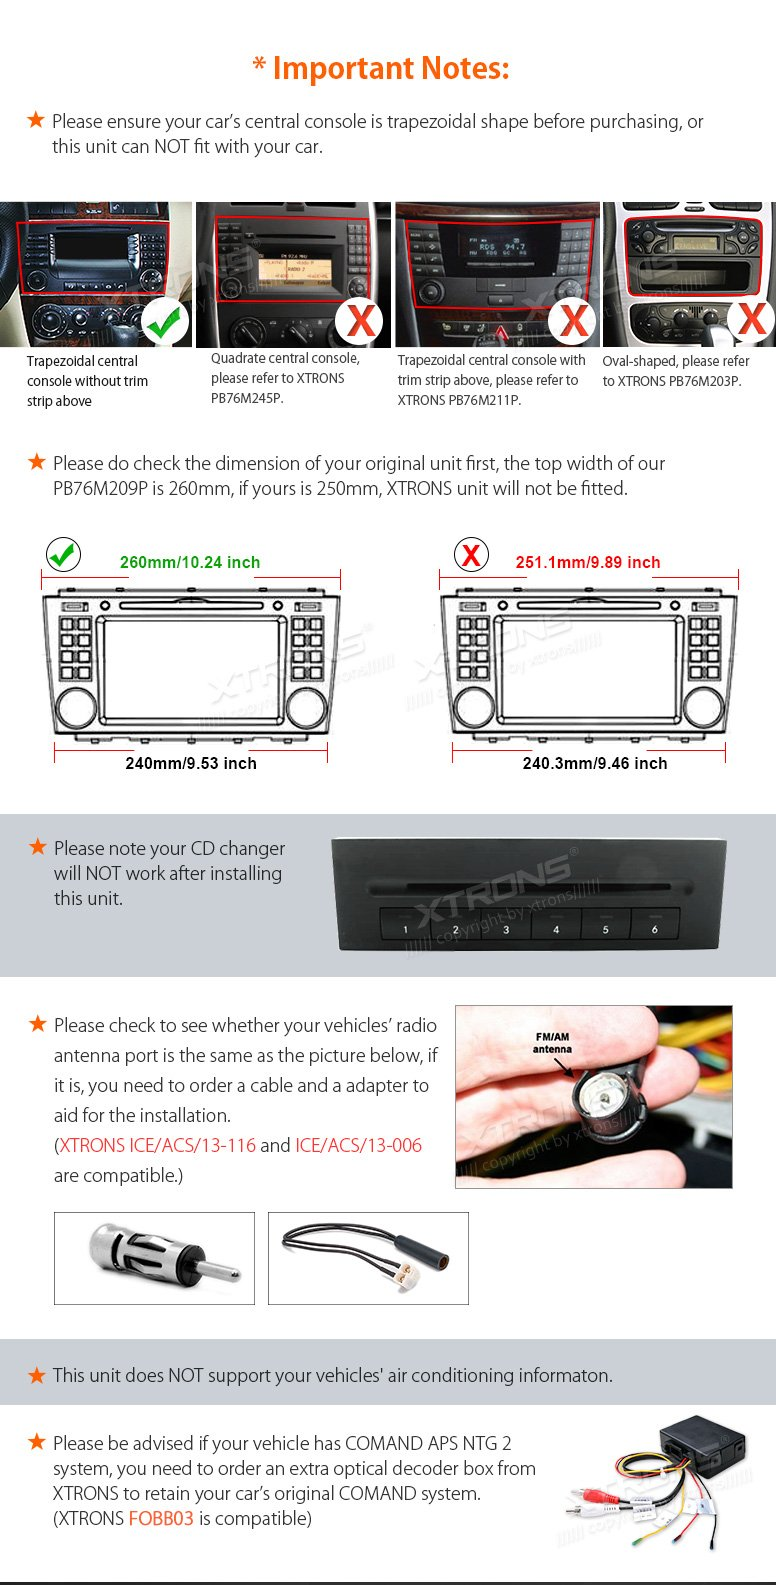 XTRONS Android 6.0 Octa-Core 64Bit 2G RAM 32GB ROM 7 Inch Capacitive Touch Screen Car Stereo Radio DVD Player GPS CANbus Screen Mirroring Function OBD2 Tire Pressure Monitoring for Mercedes-Benz by XTRONS (Image #4)